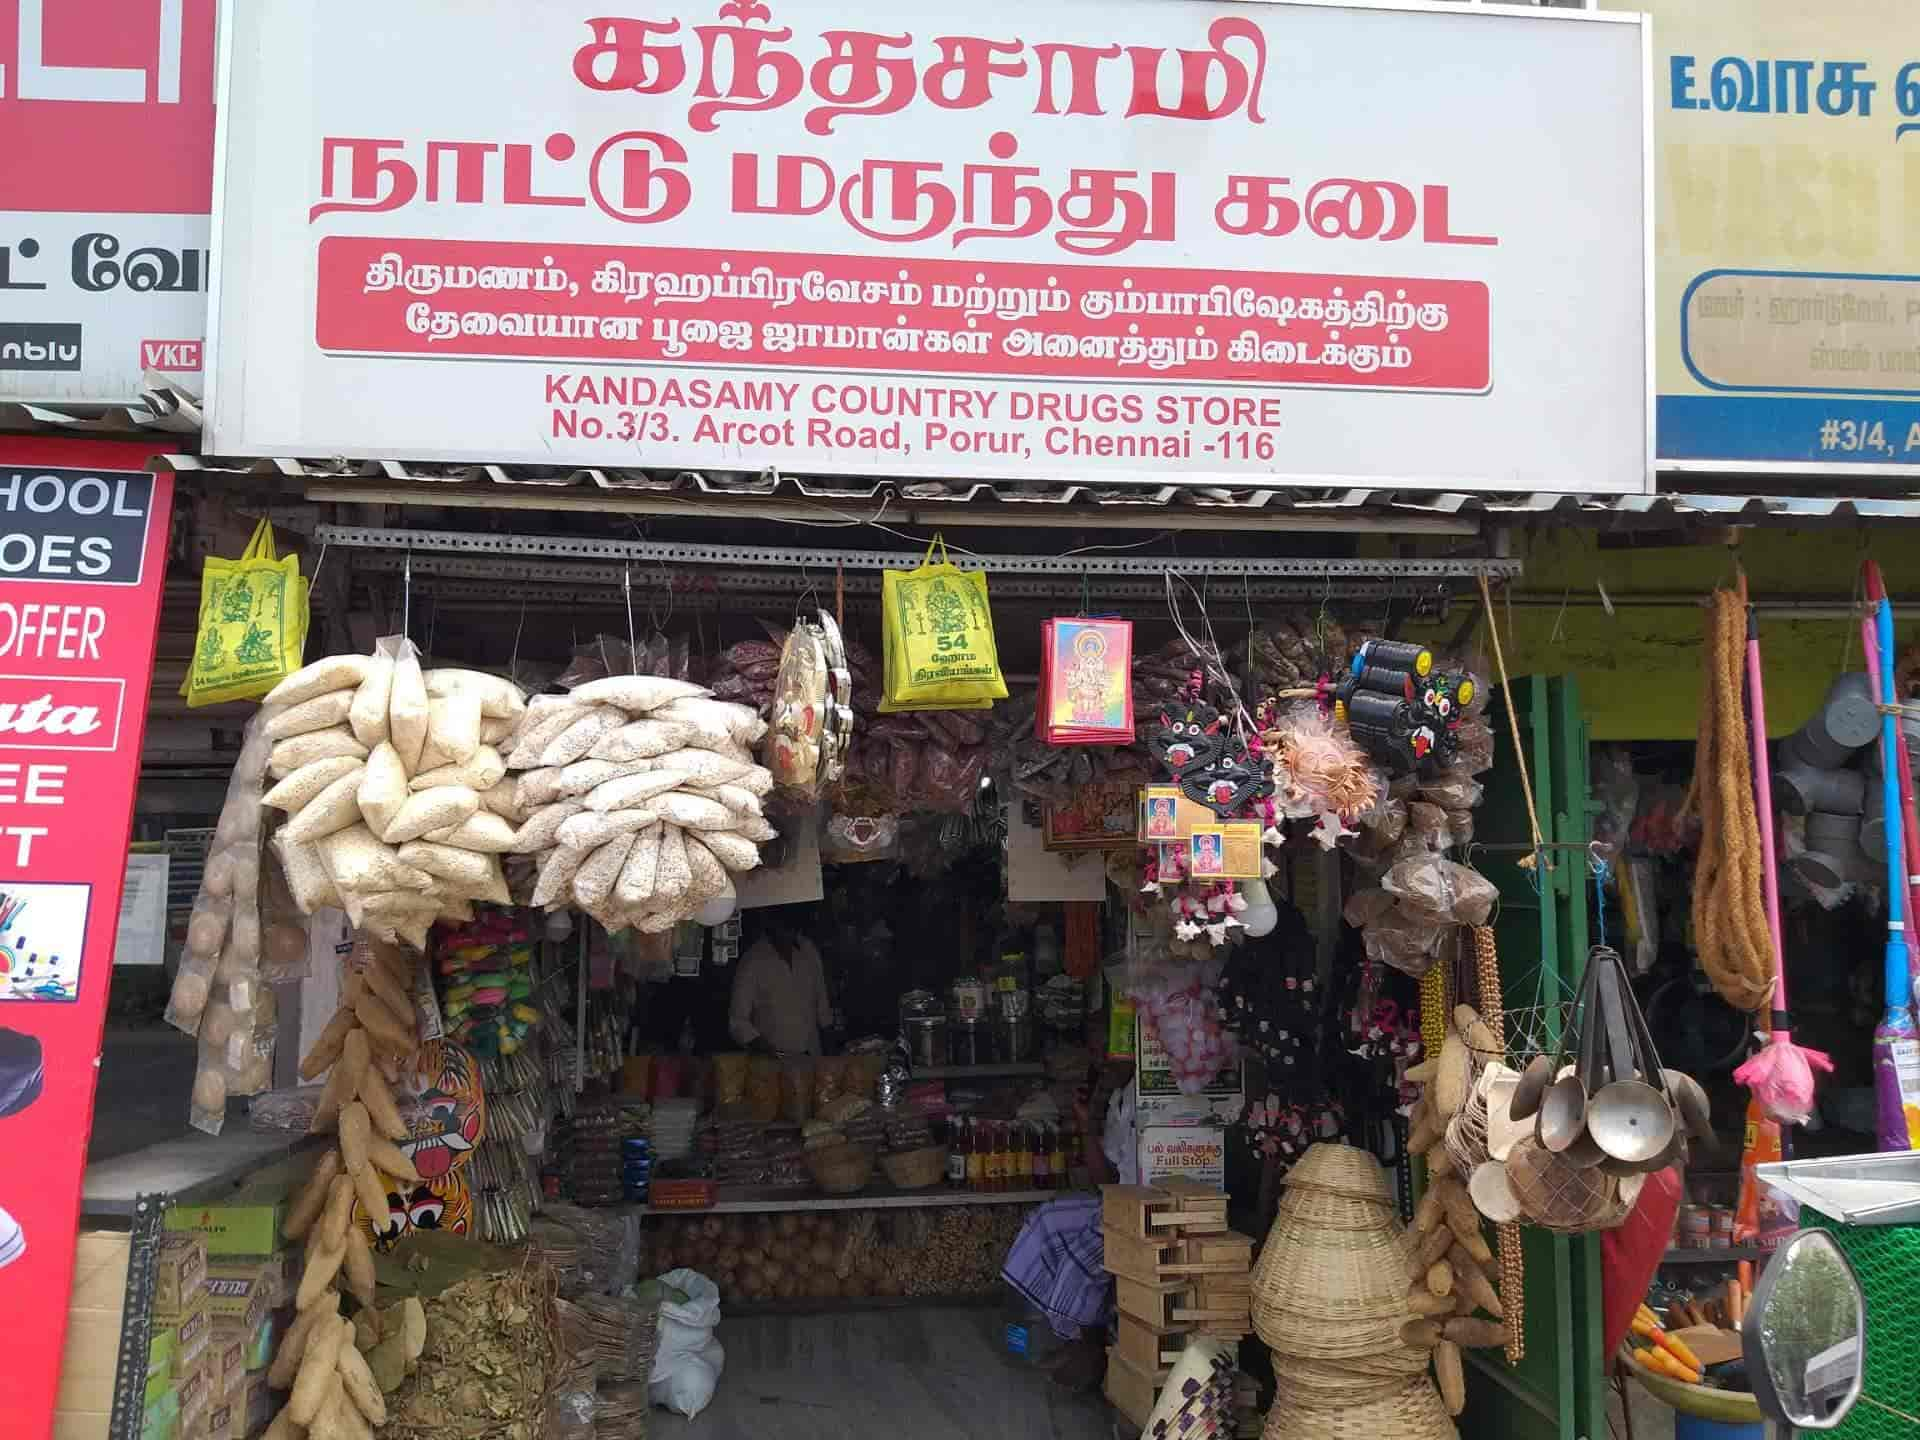 Kandasamy Country Drugs Store, Porur - Puja Item Dealers in